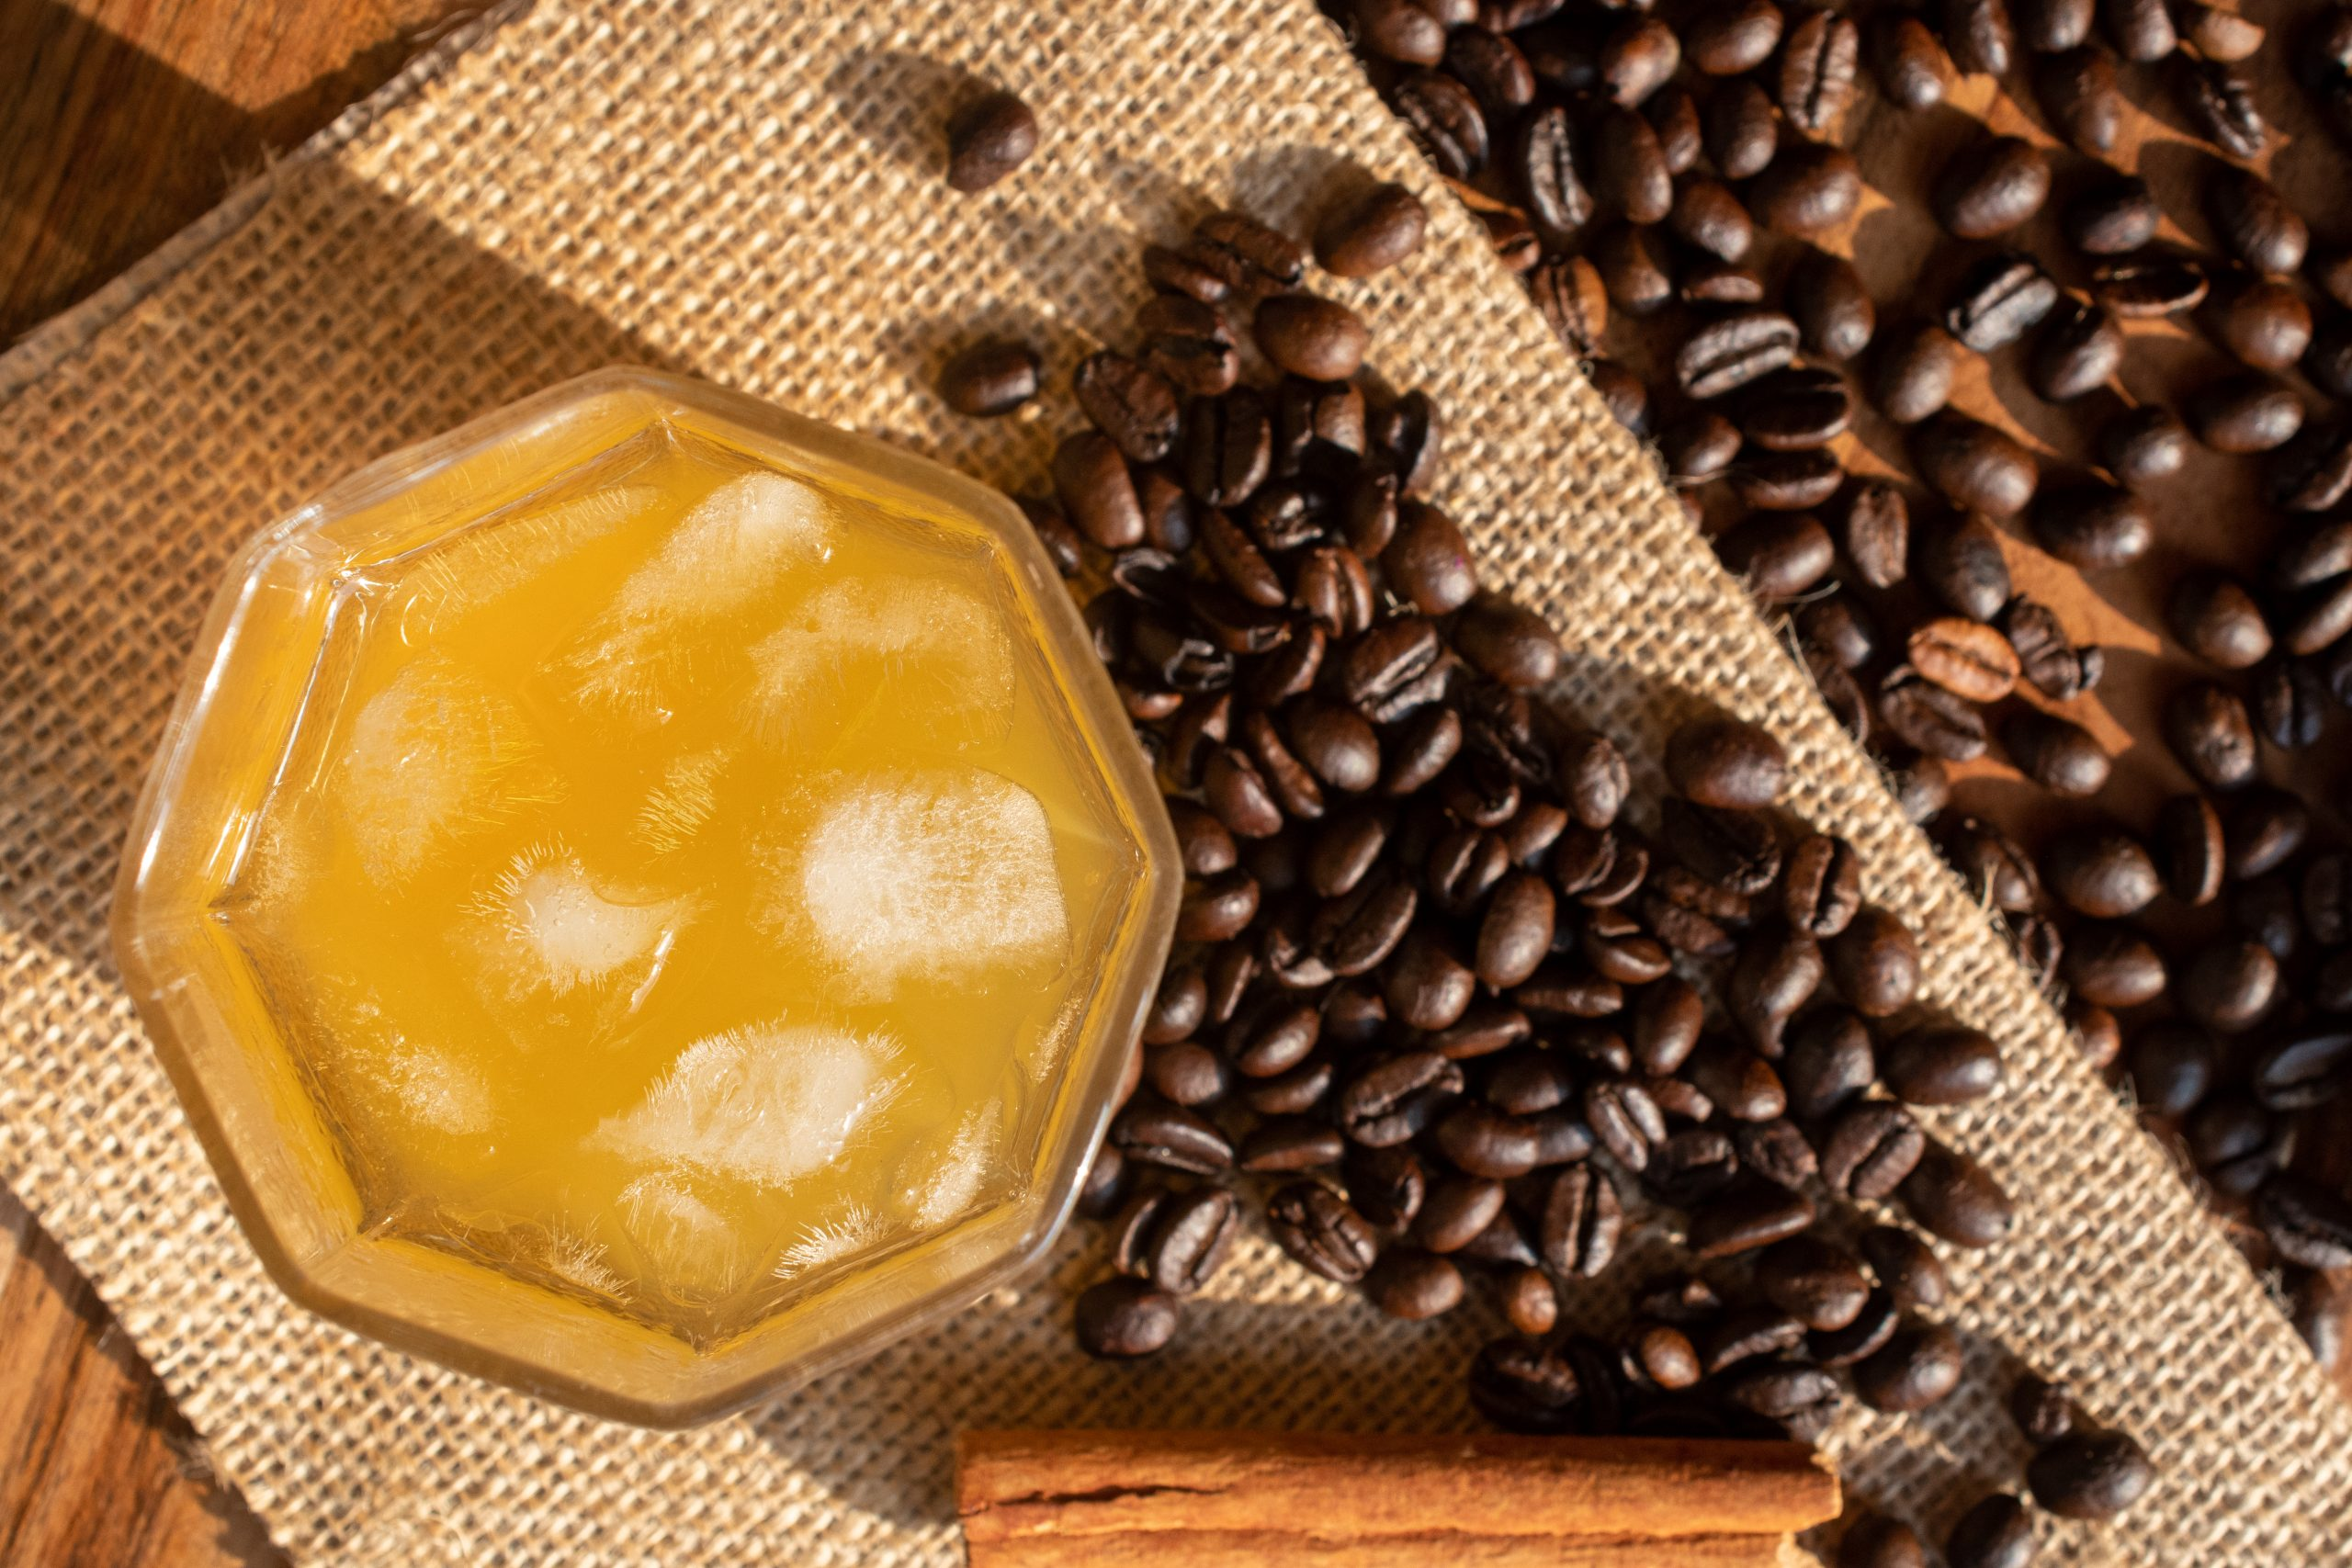 ornage juice and coffee beans